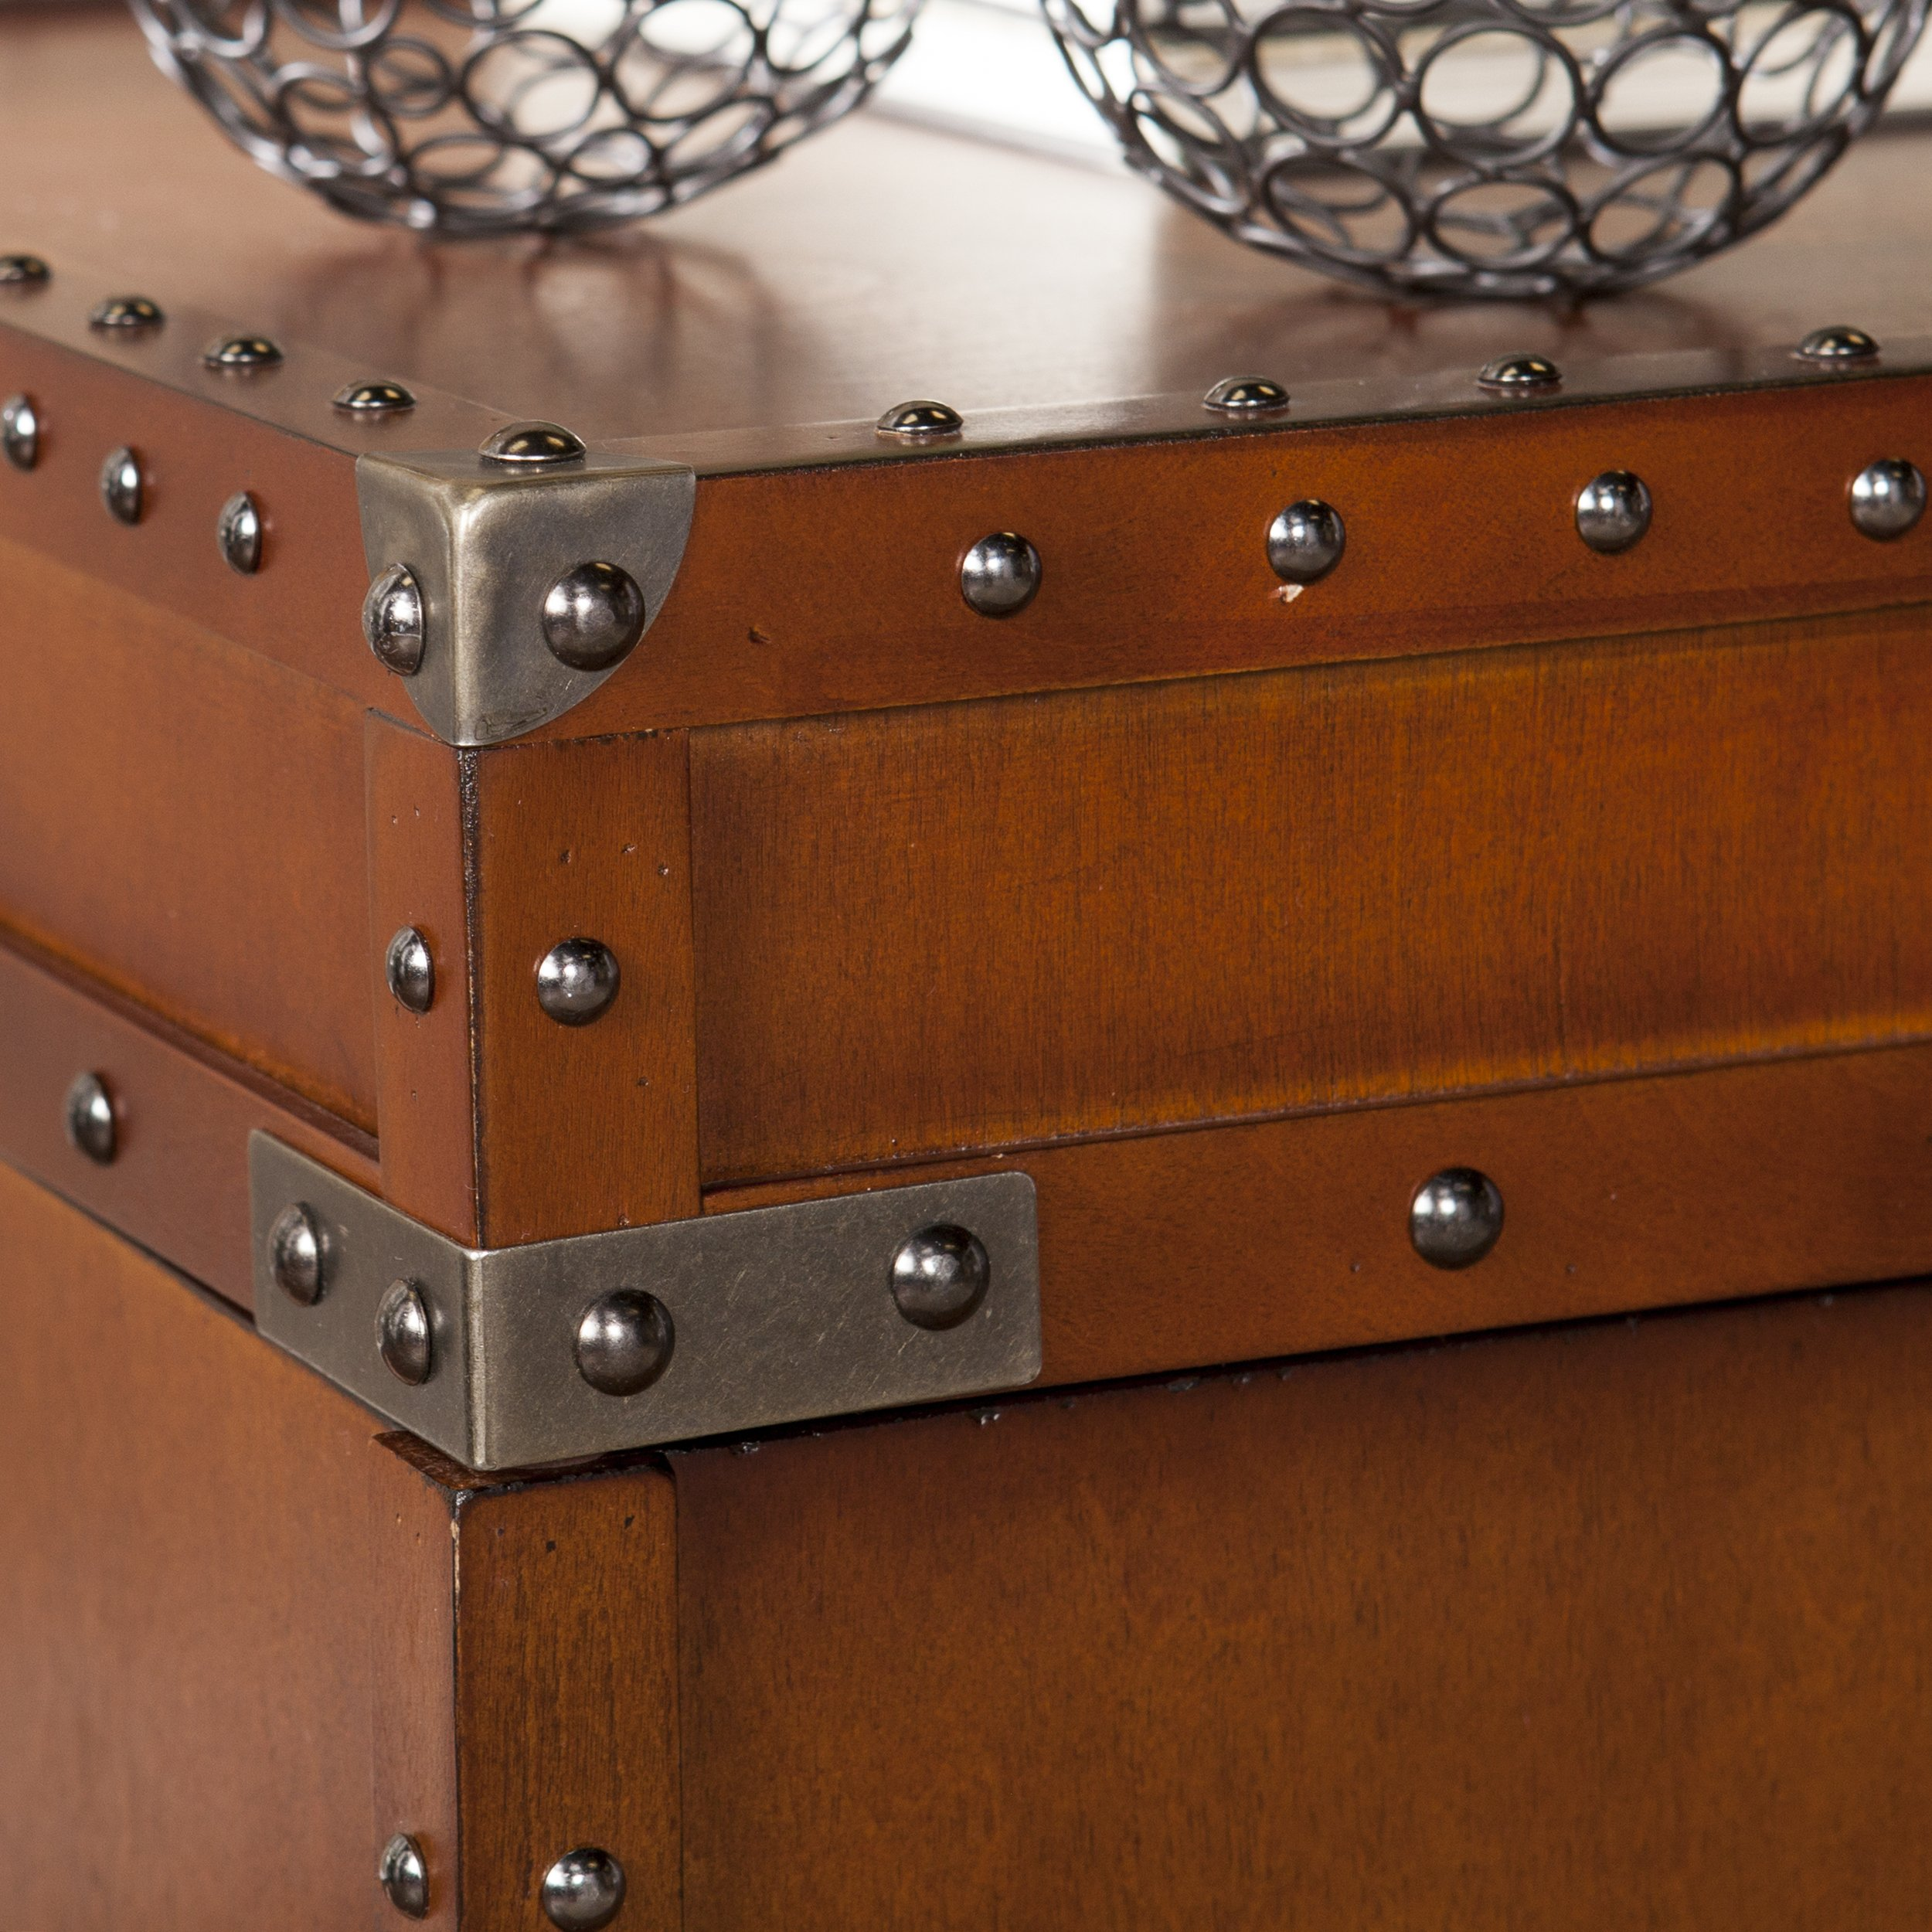 Southern Enterprises Steamer Trunk End Table - Rustic Nailhead Trim - Refinded Industrial Style by Southern Enterprises (Image #3)